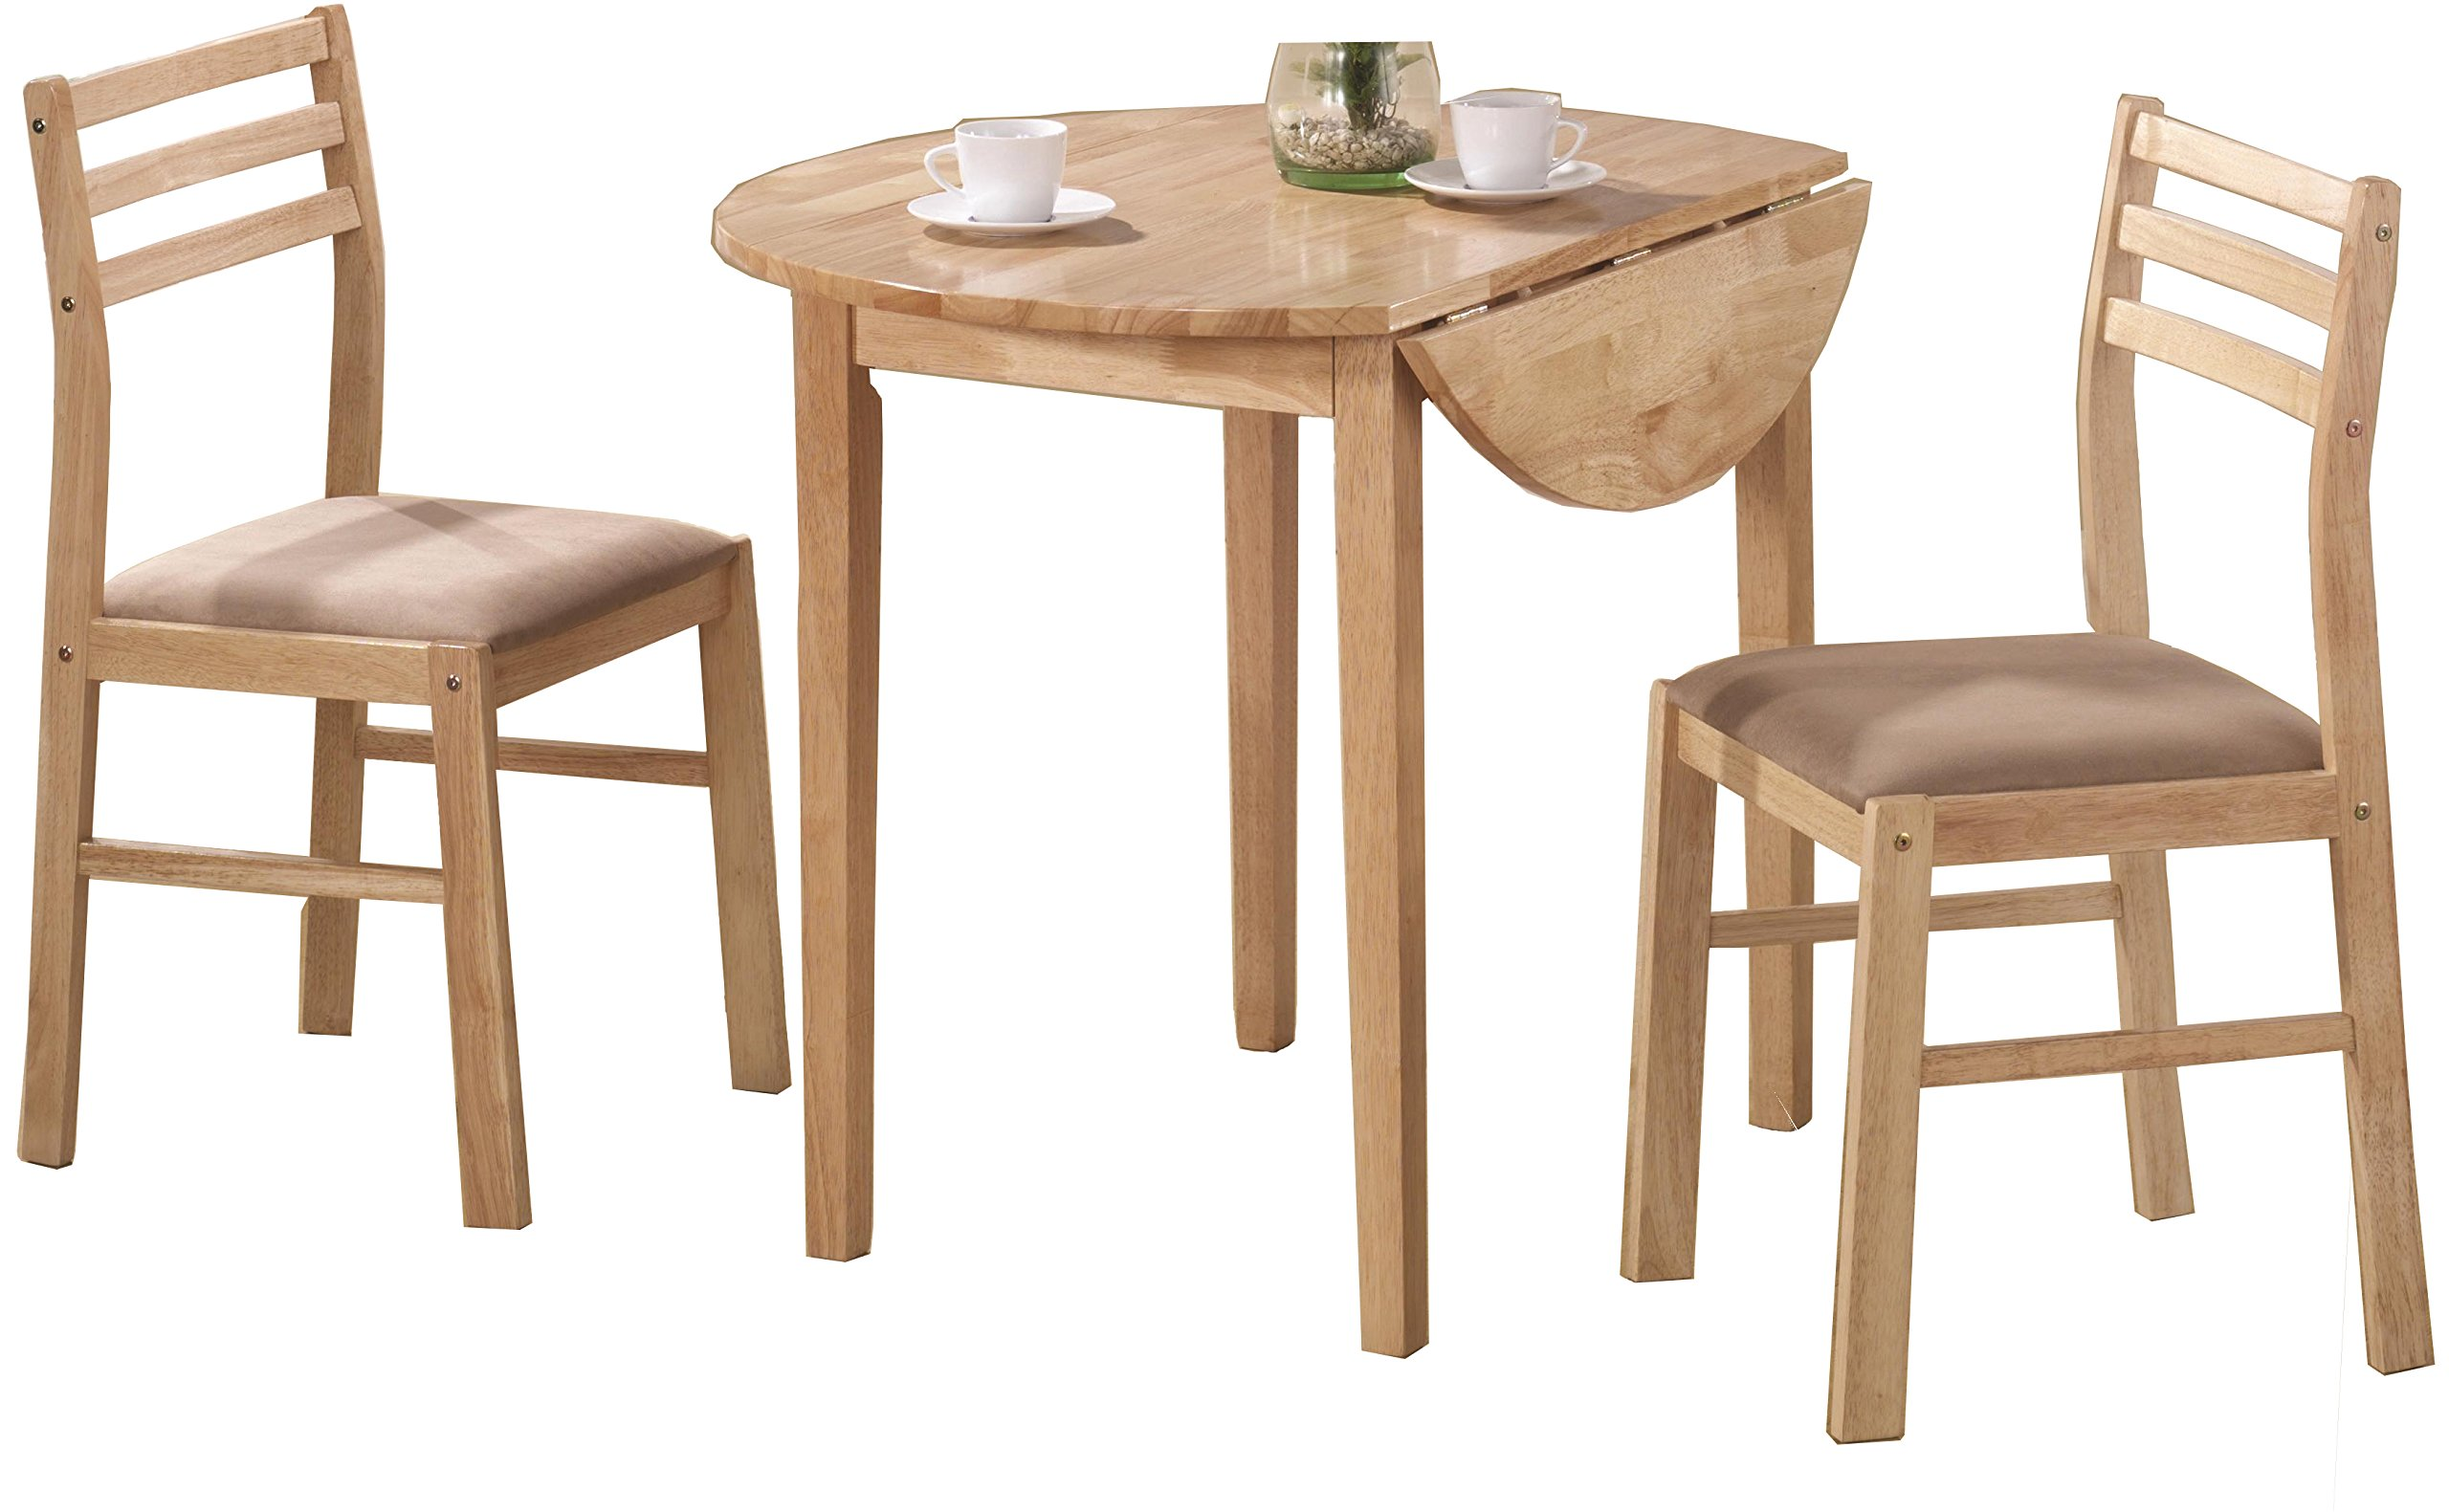 kitchen tables for small spaces amazon com rh amazon com amazon uk kitchen tables and chairs amazon small kitchen tables